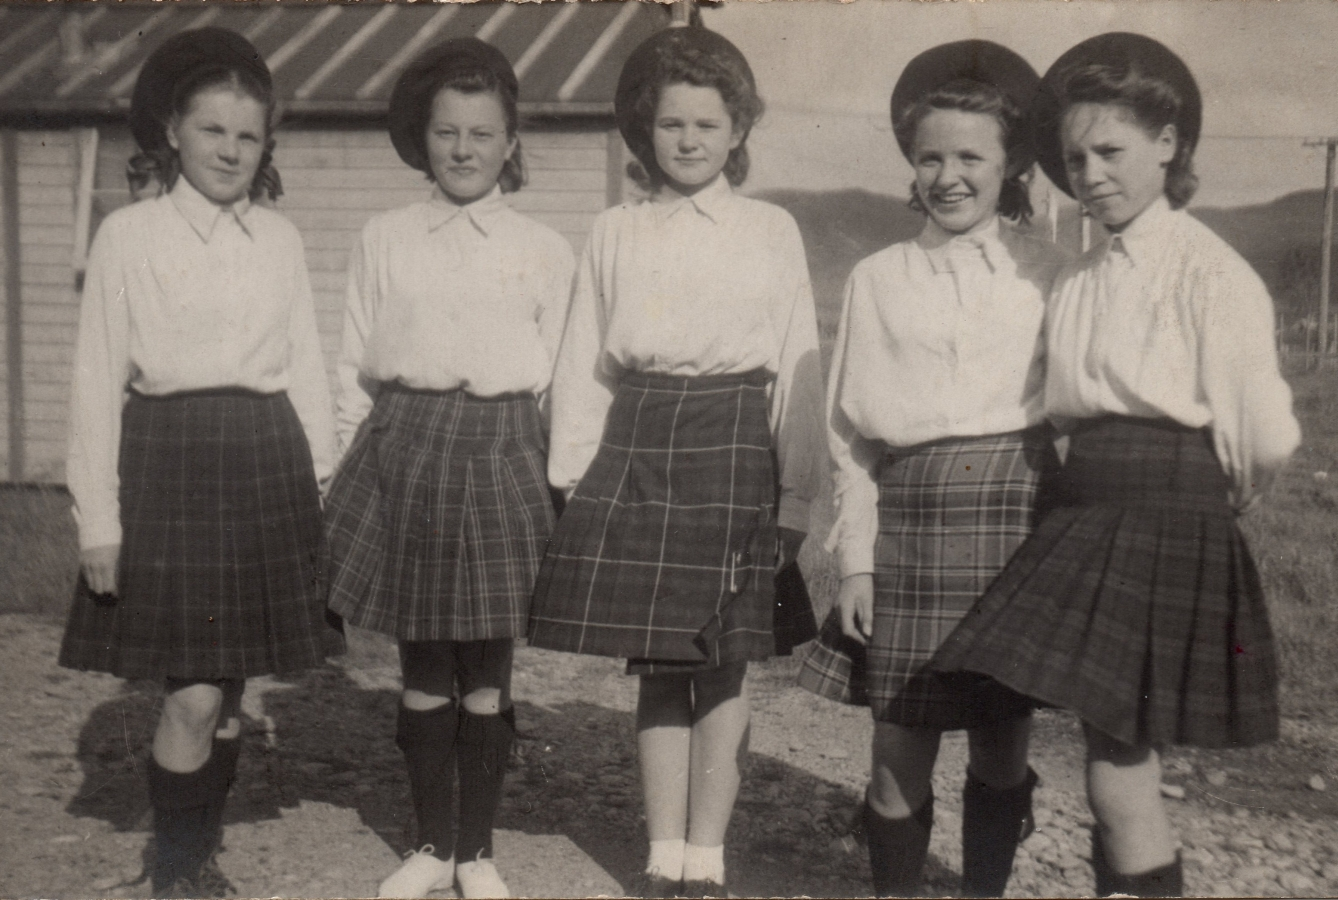 The five girls   pose outside wearing their kilts, white shirts and Scottish berets